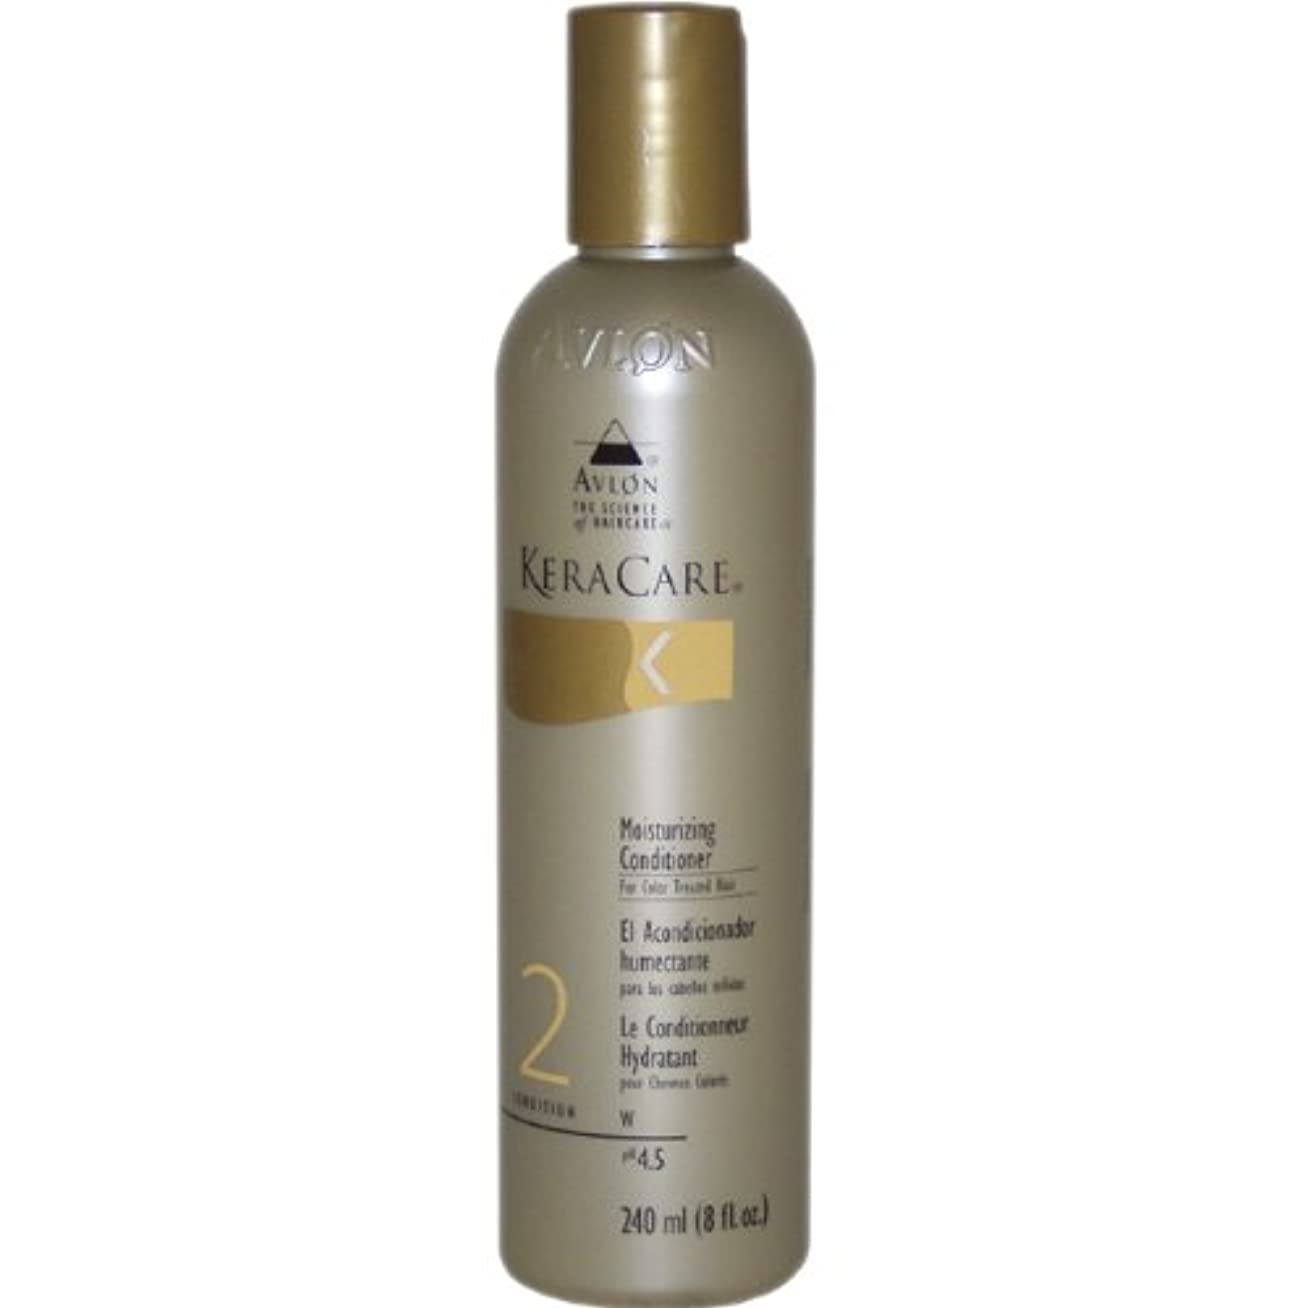 センチメンタルシティ知らせるAvlon KeraCare Moisturising Conditioner for Dry and Itchy Scalp 240ml